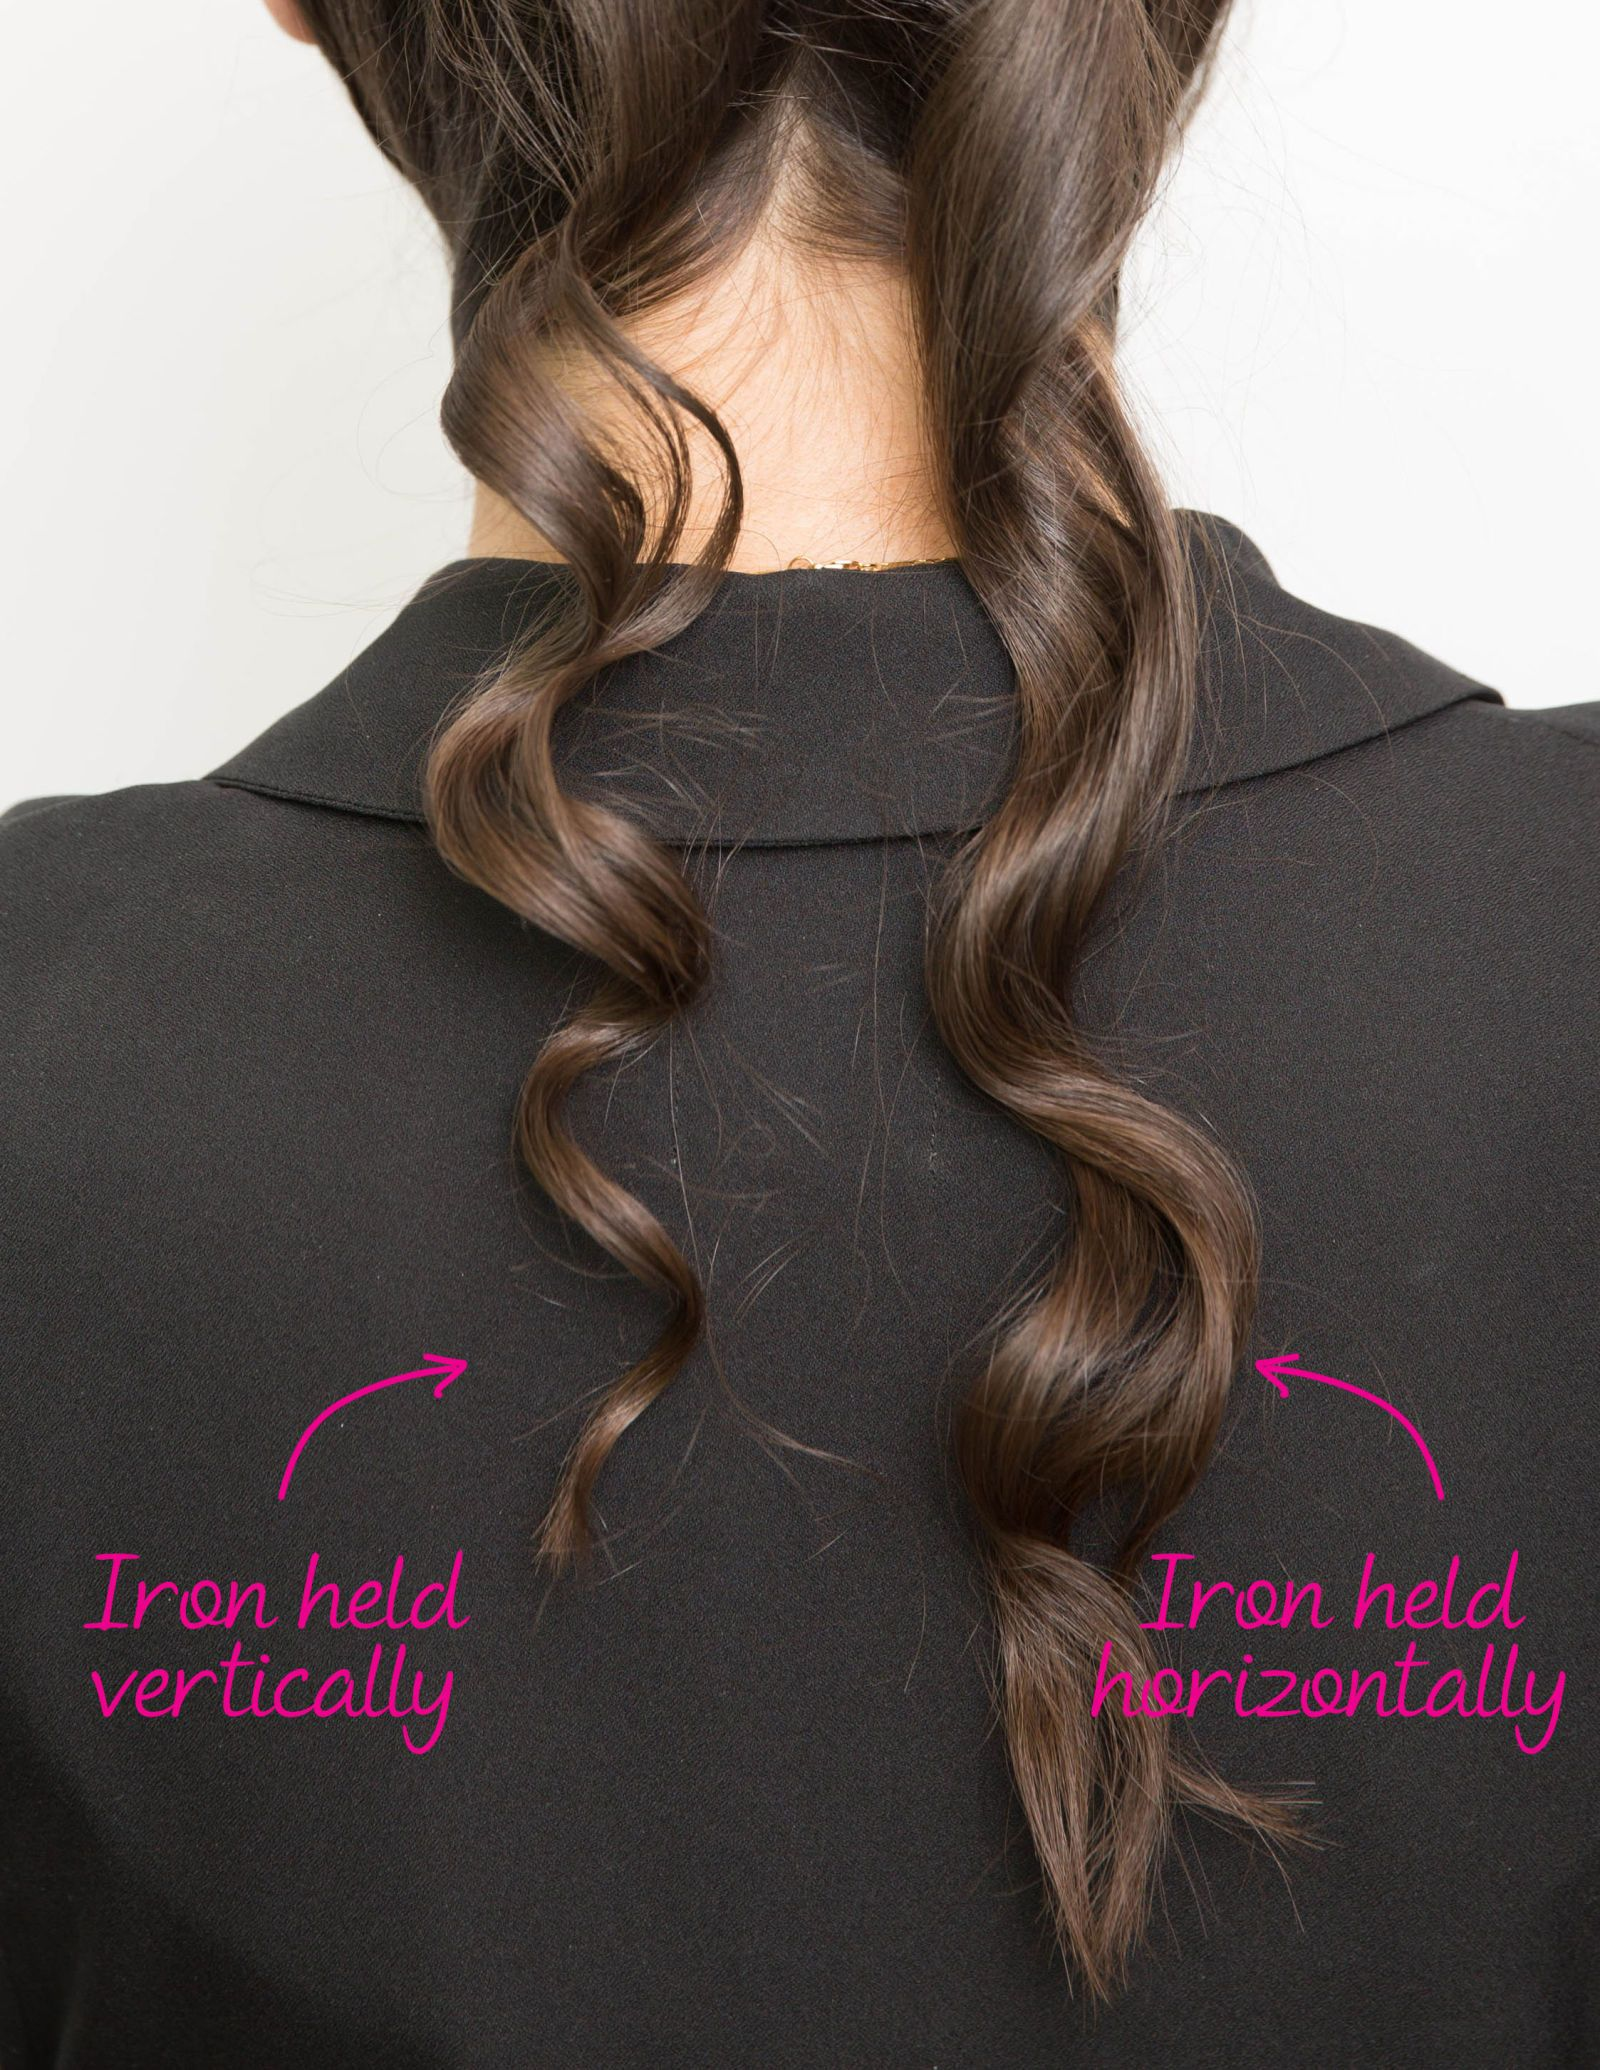 22 Surprising Hair and Makeup Hacks Every Girl Should Know